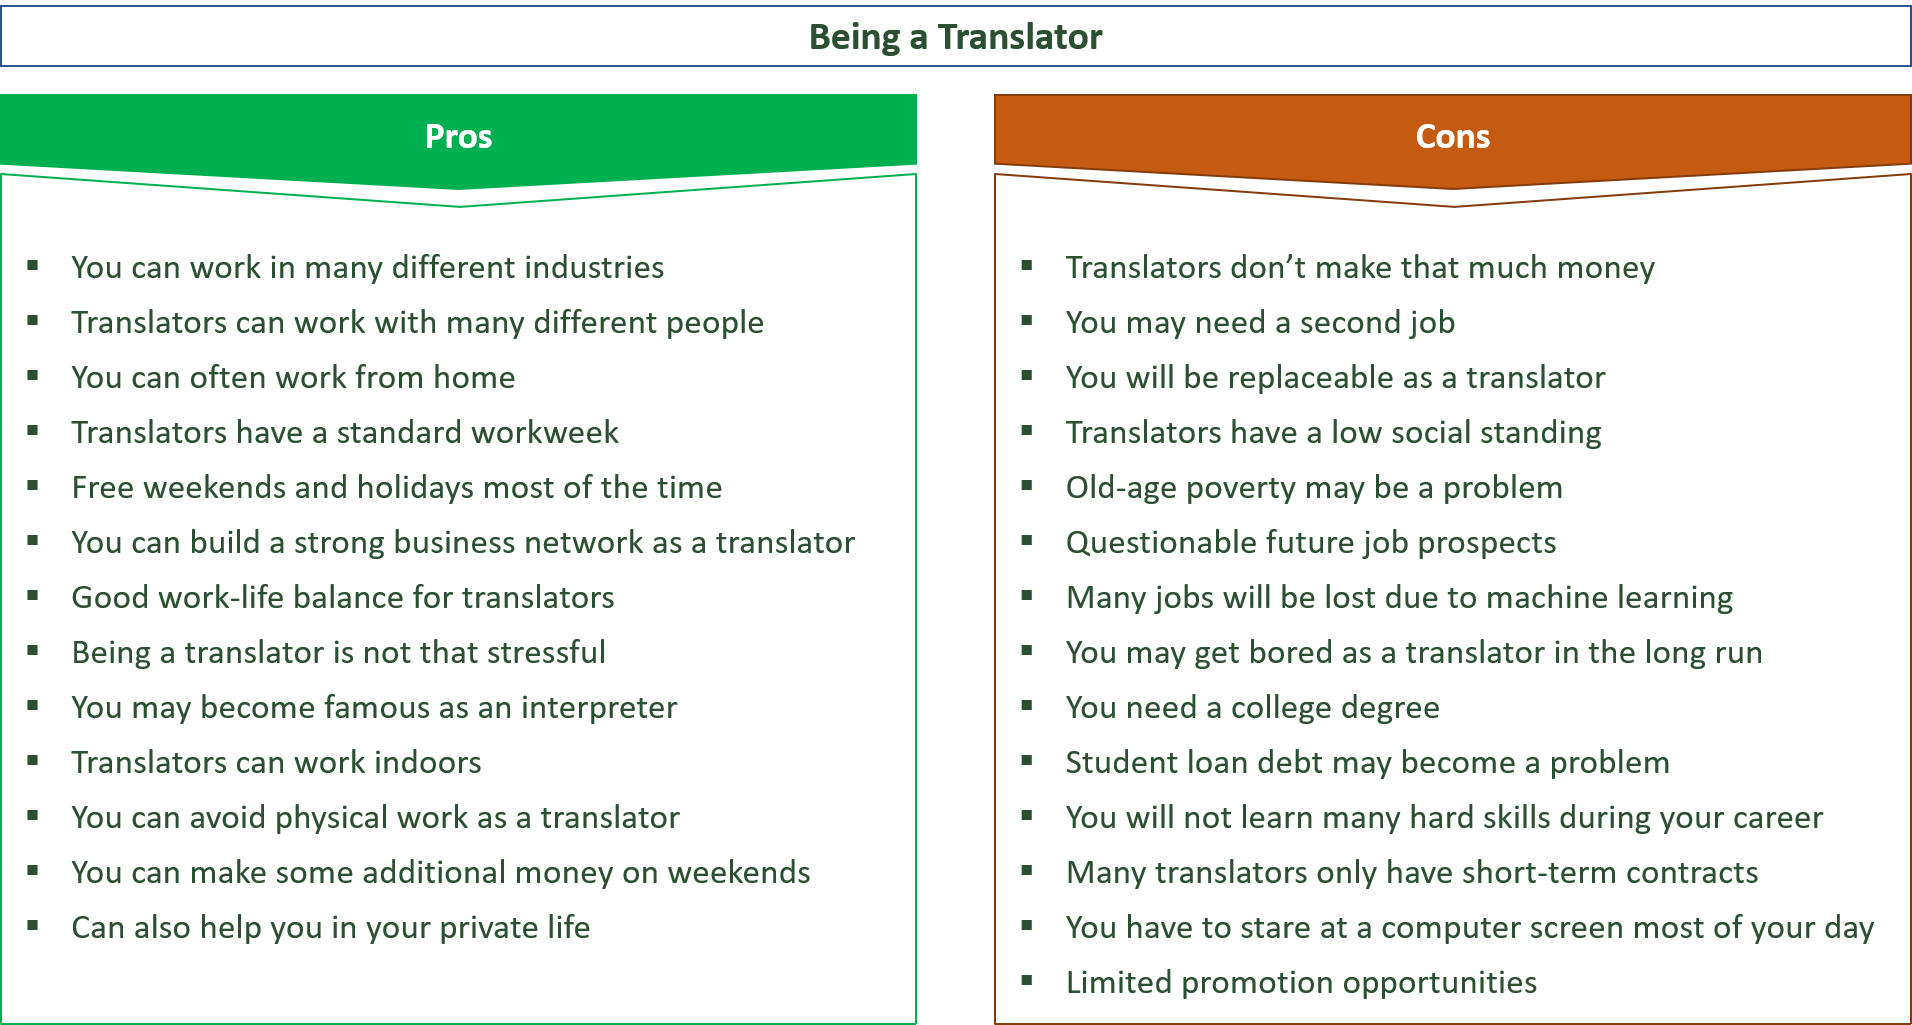 advantages and disadvantages of being a translator